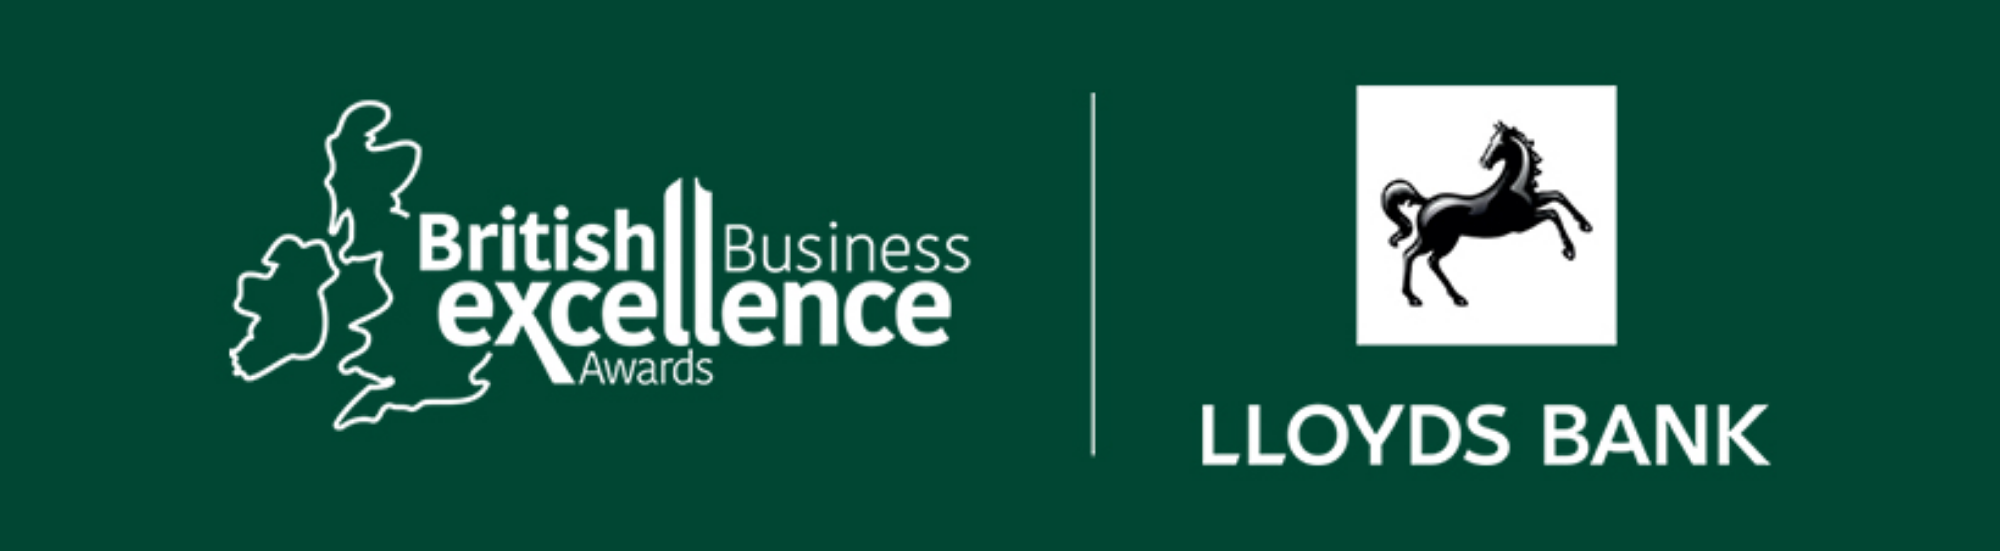 The 2021 Lloyds Bank British Business Excellence Awards are now open